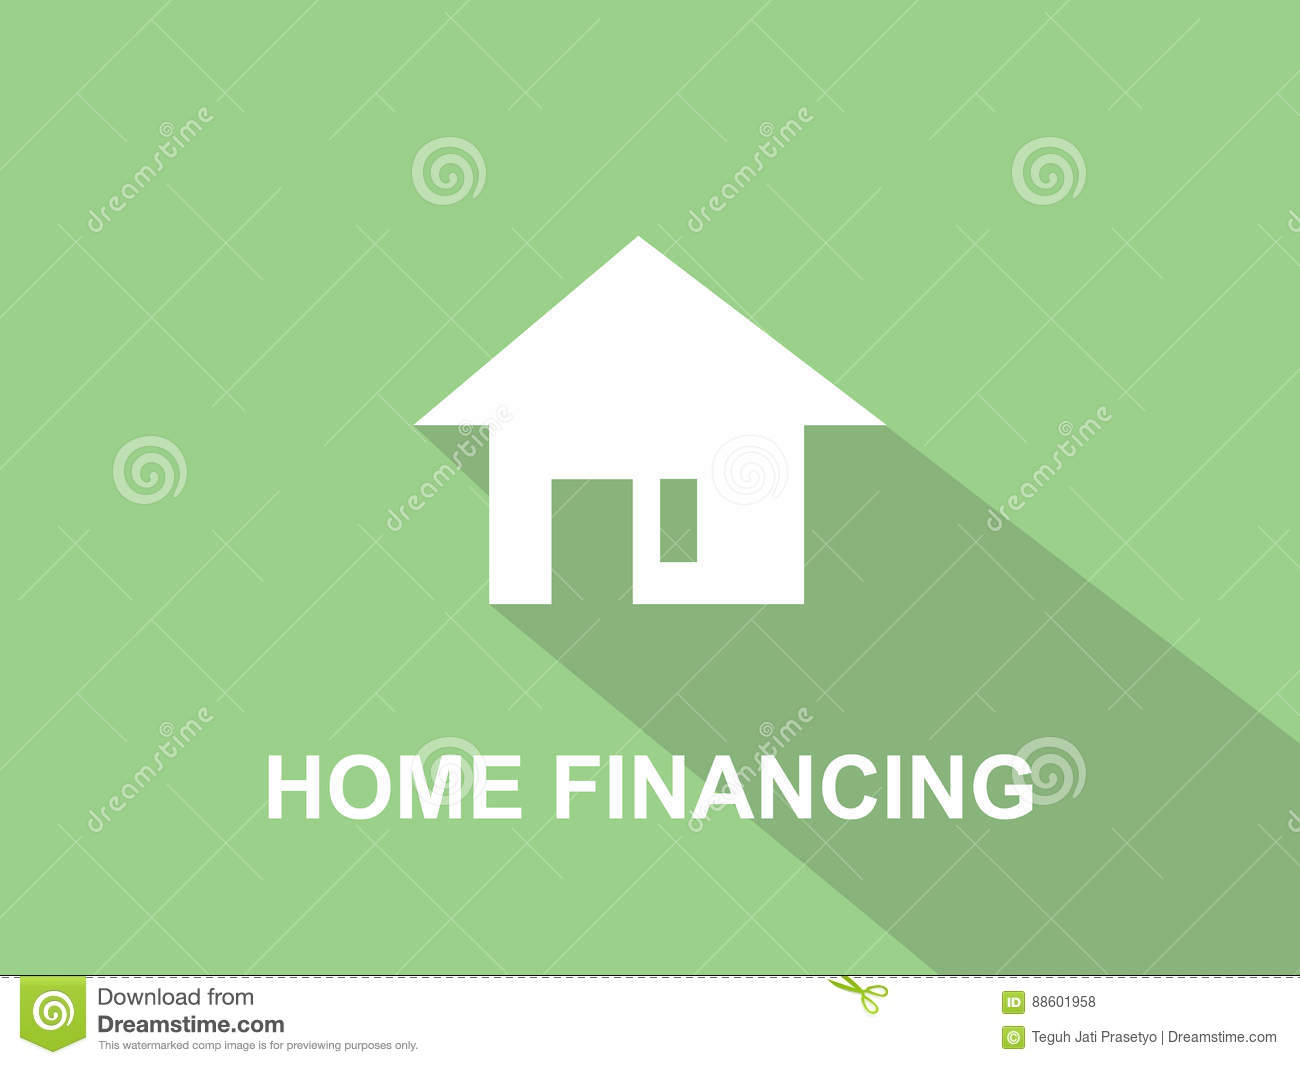 home financing white text illustration with white house silhouette